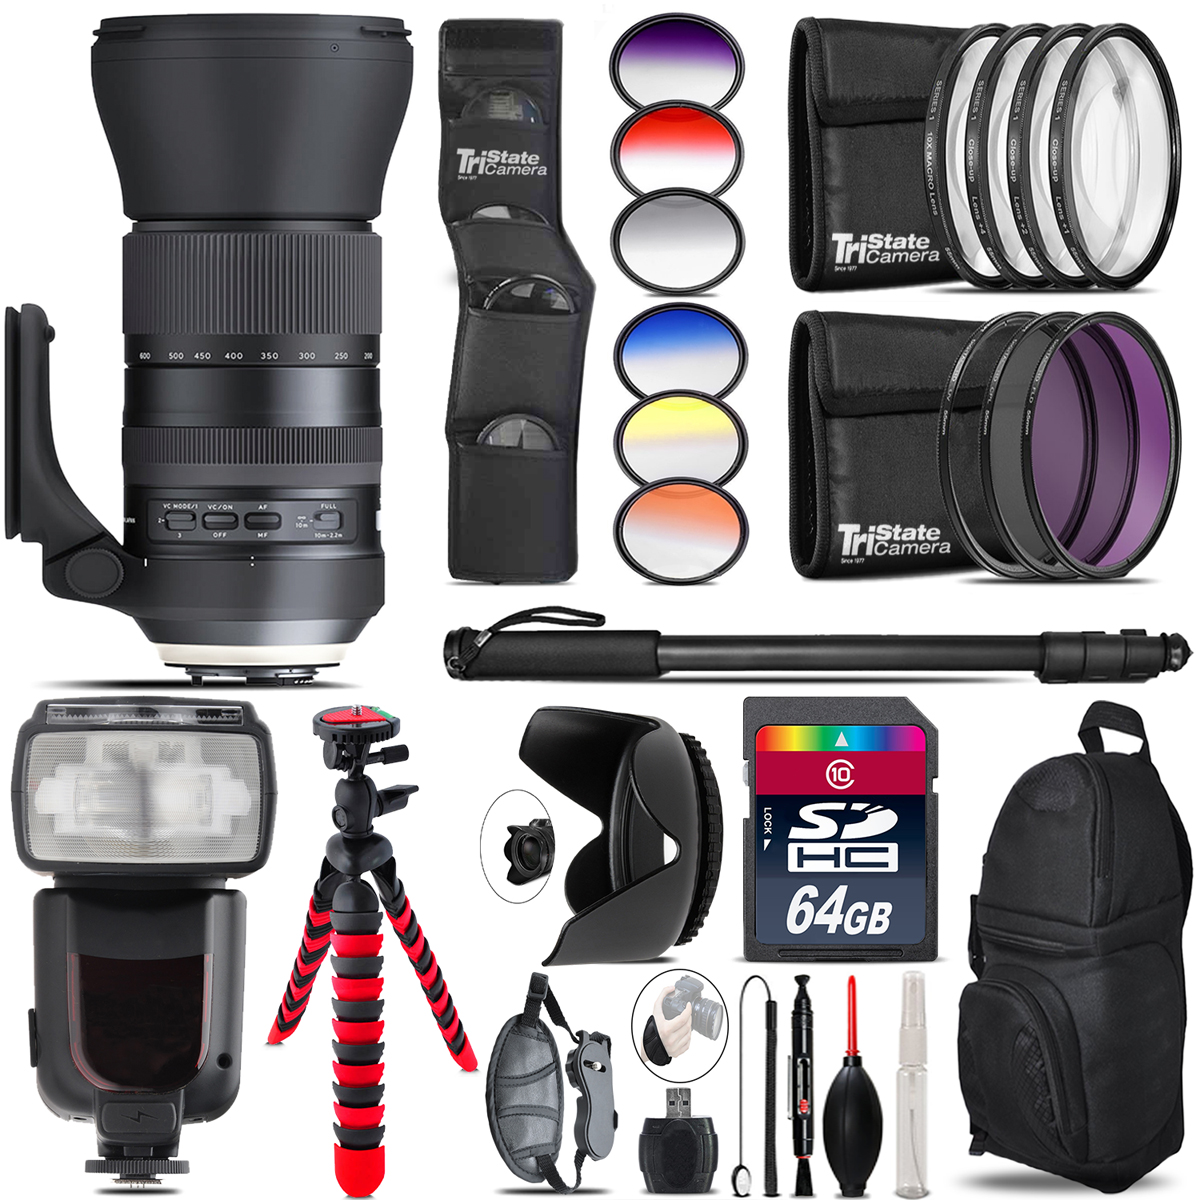 Tamron 150-600mm G2 for Canon + Pro Flash + Filter Kit - 64GB Accessory Kit *FREE SHIPPING*